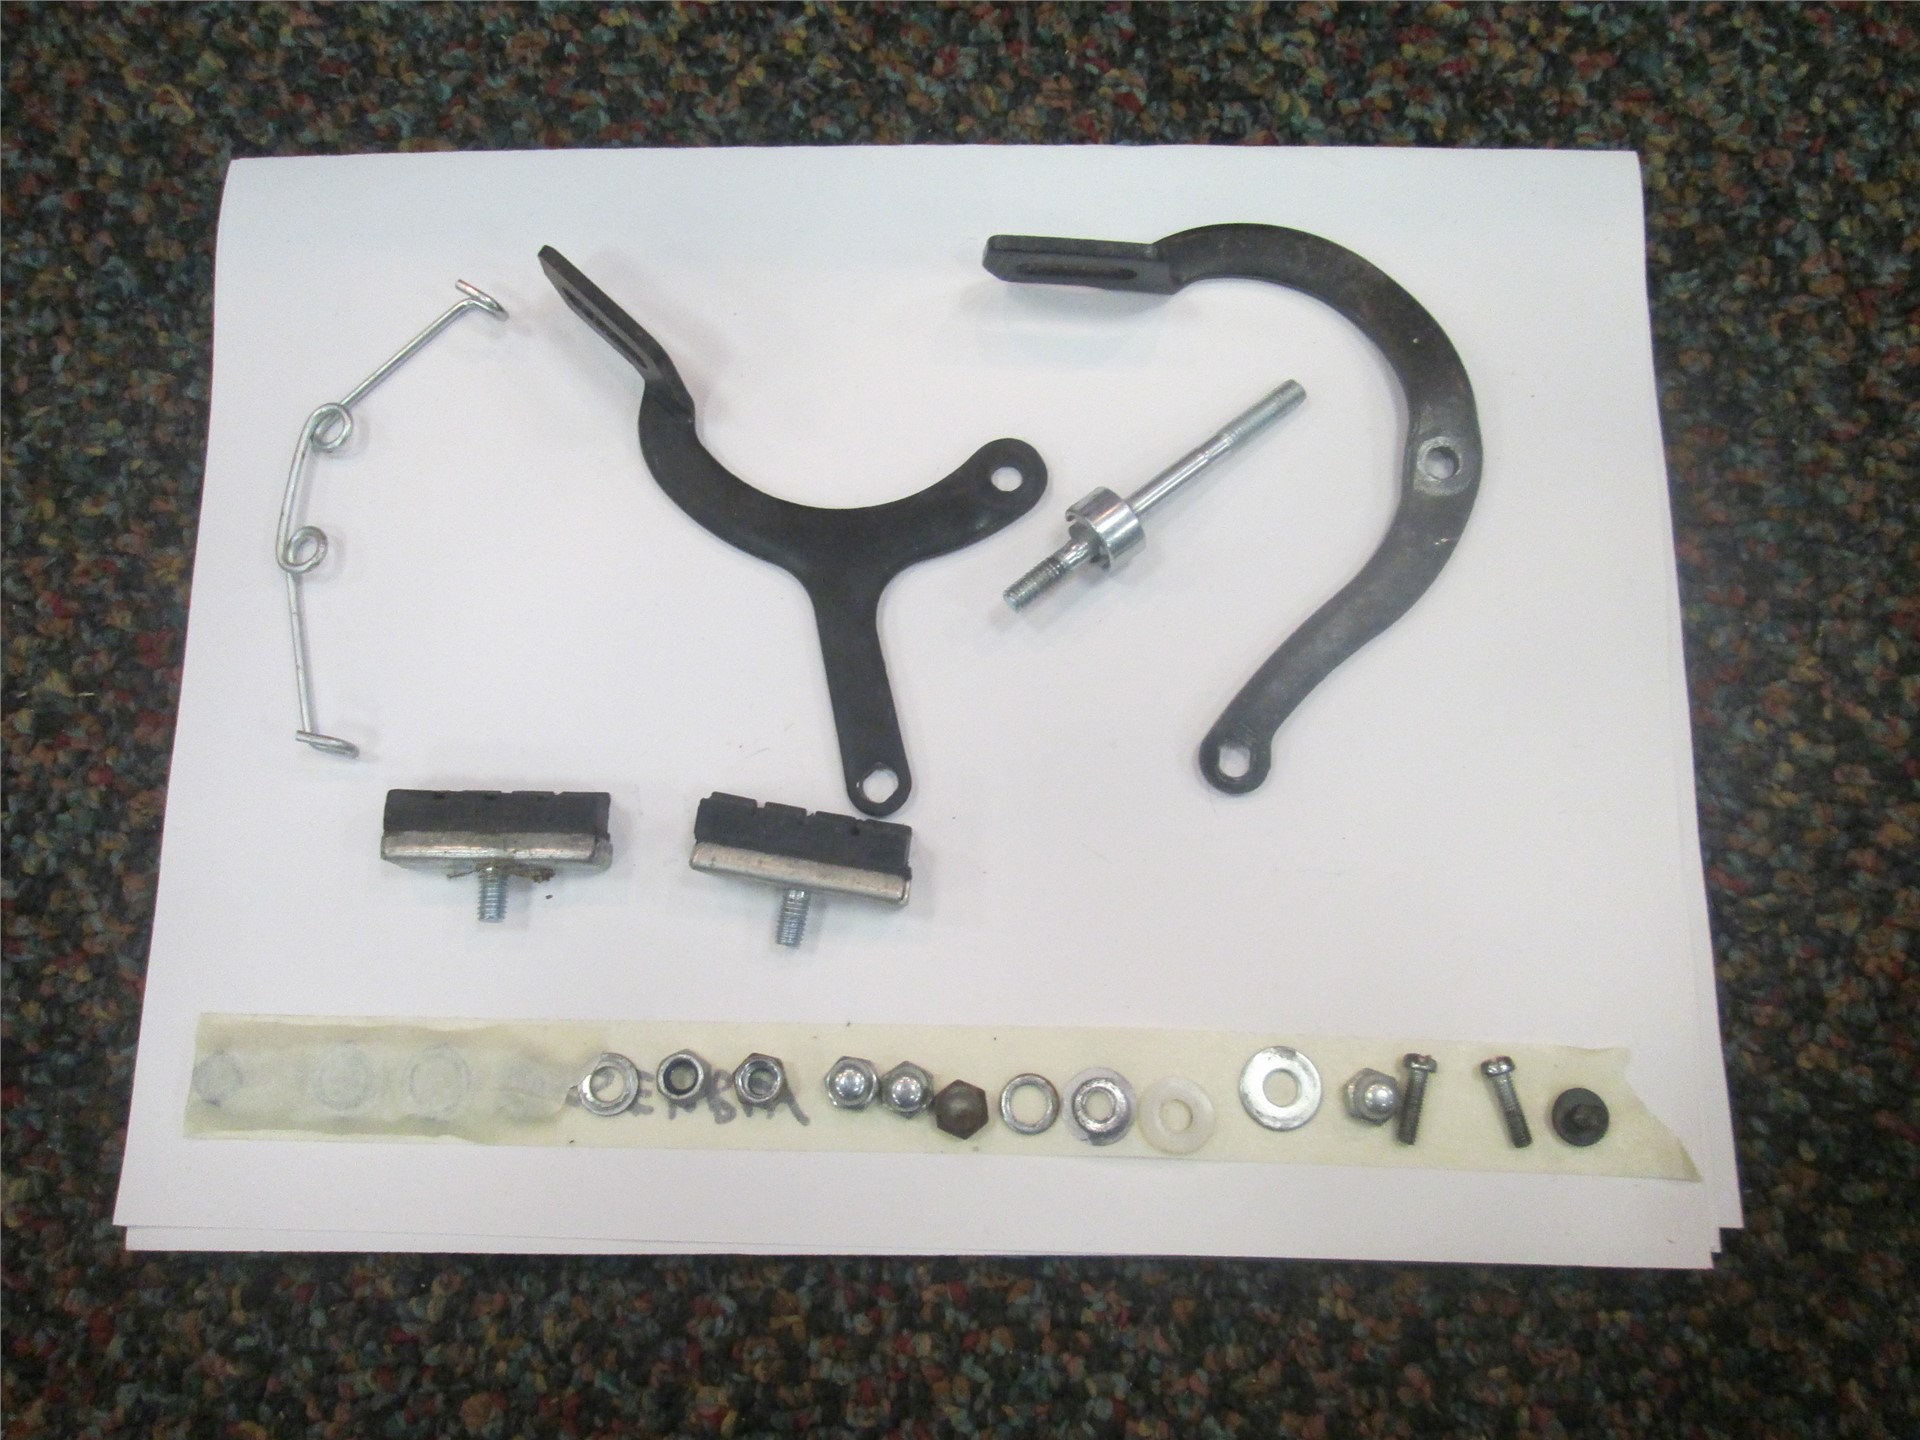 Image of bicycle parts.